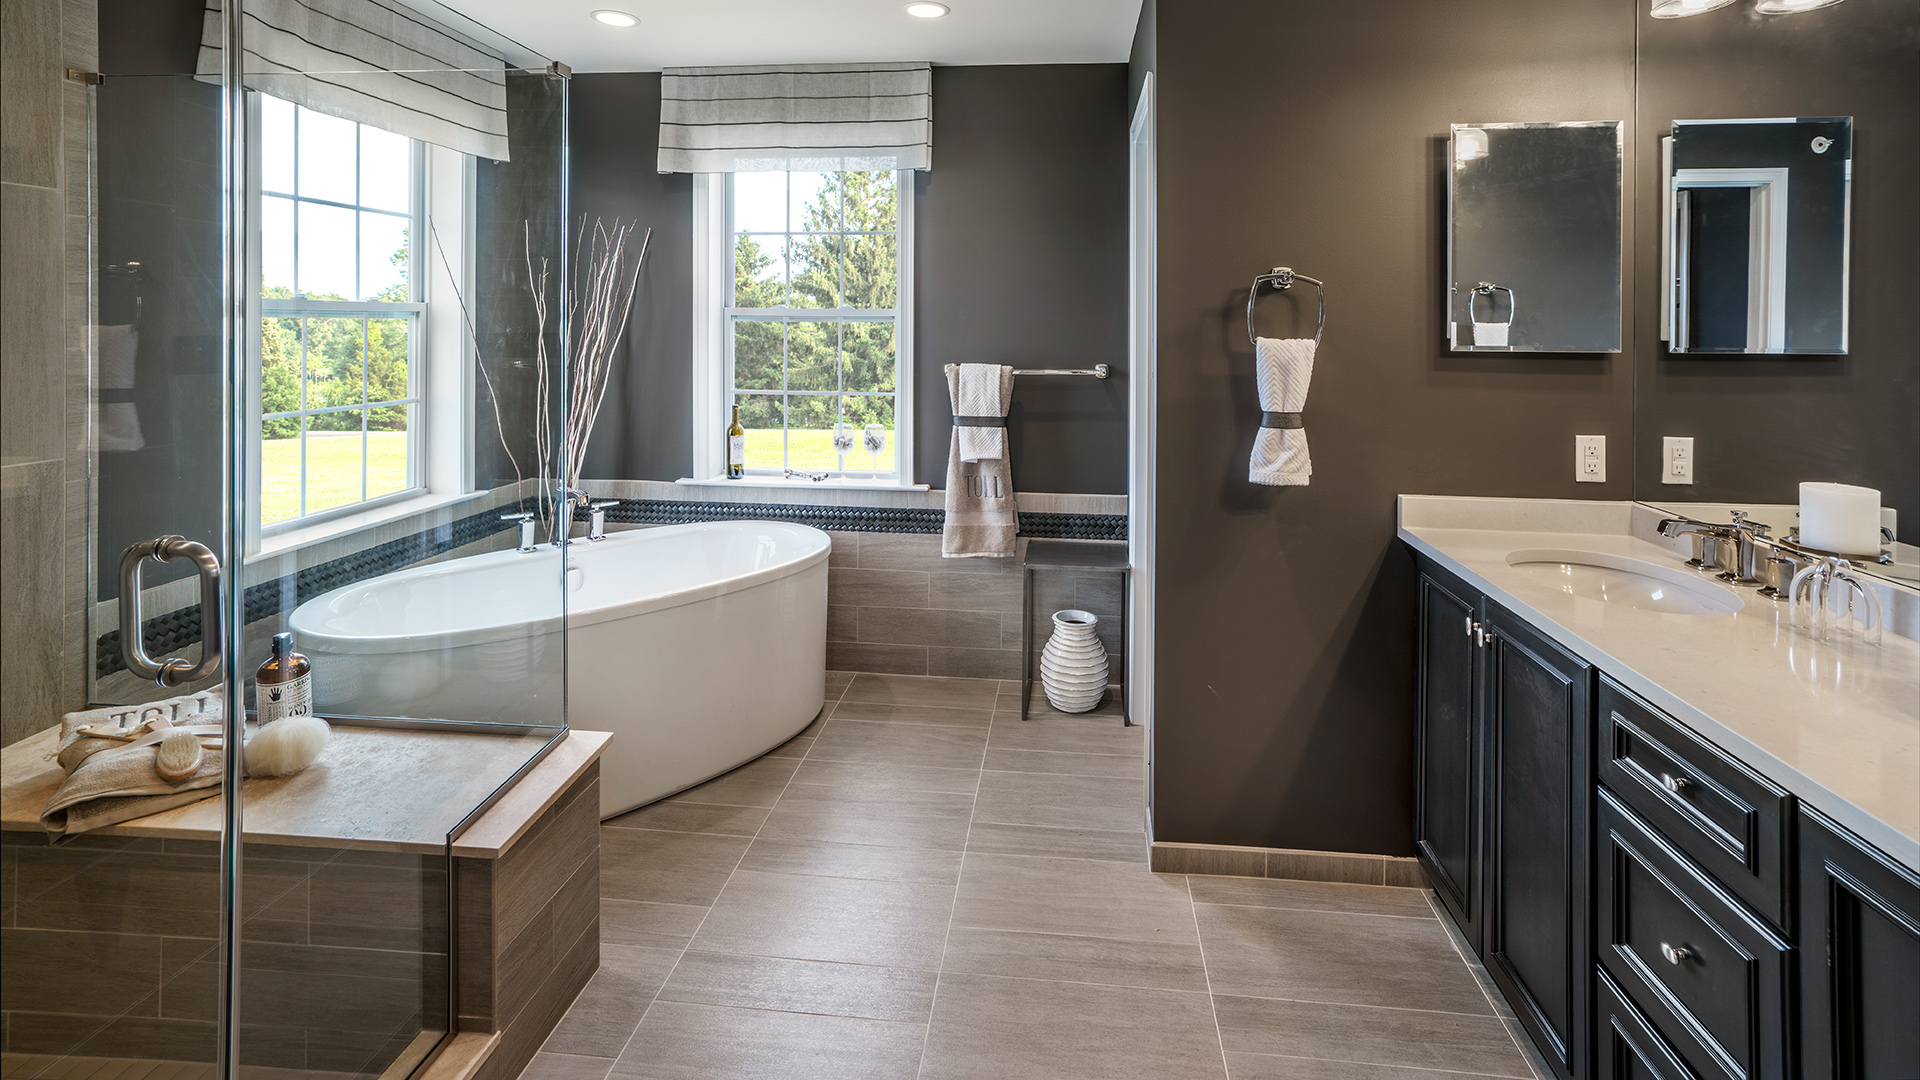 Bathroom Model Of The Delancy Home Design Available In Collegeville, PA